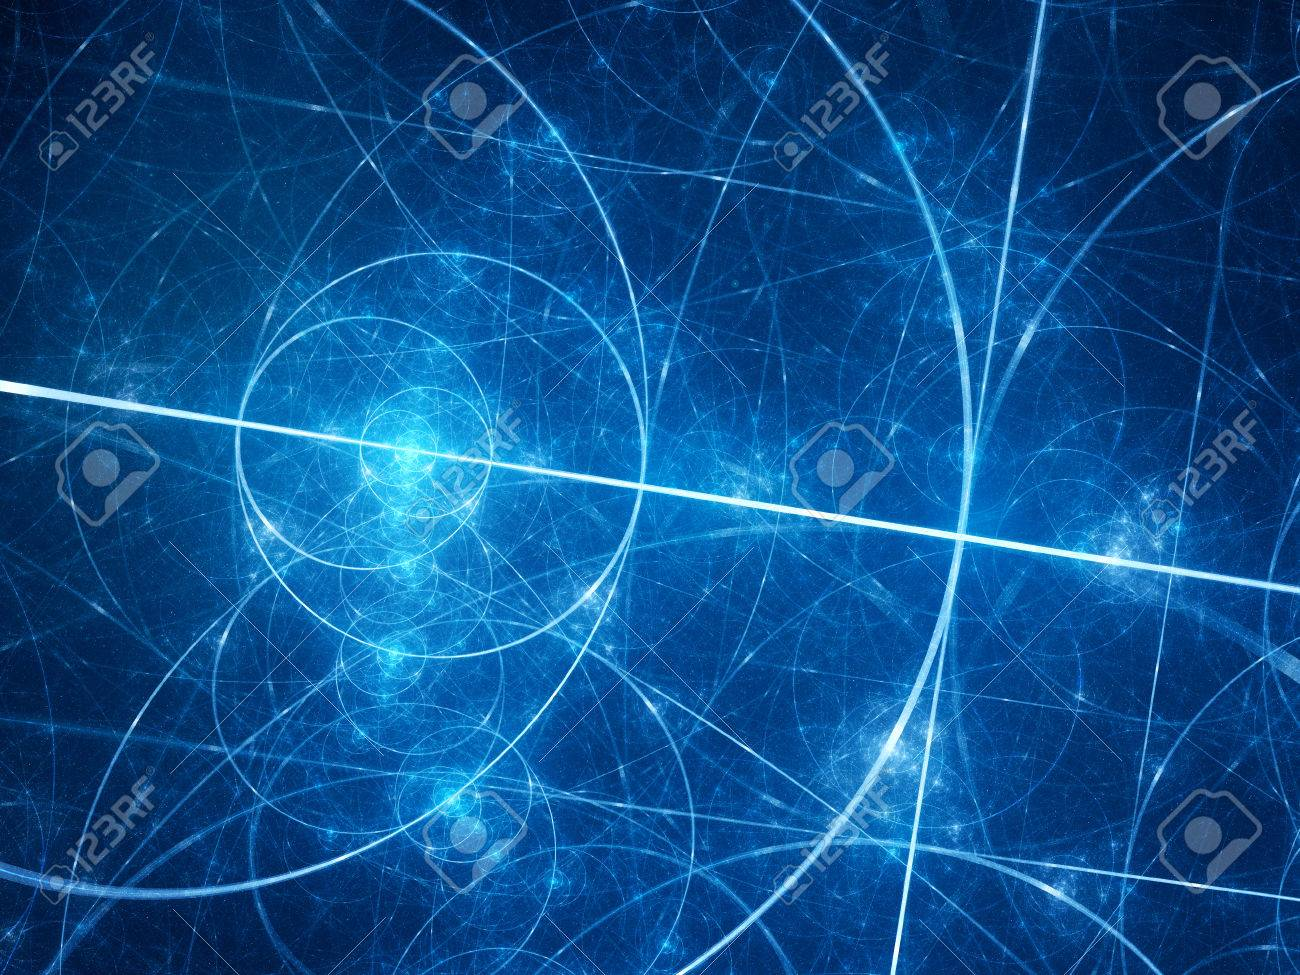 Blue glowing fibonacci circles in space, golden ratio, mathematics, computer generated abstract background - 55303624